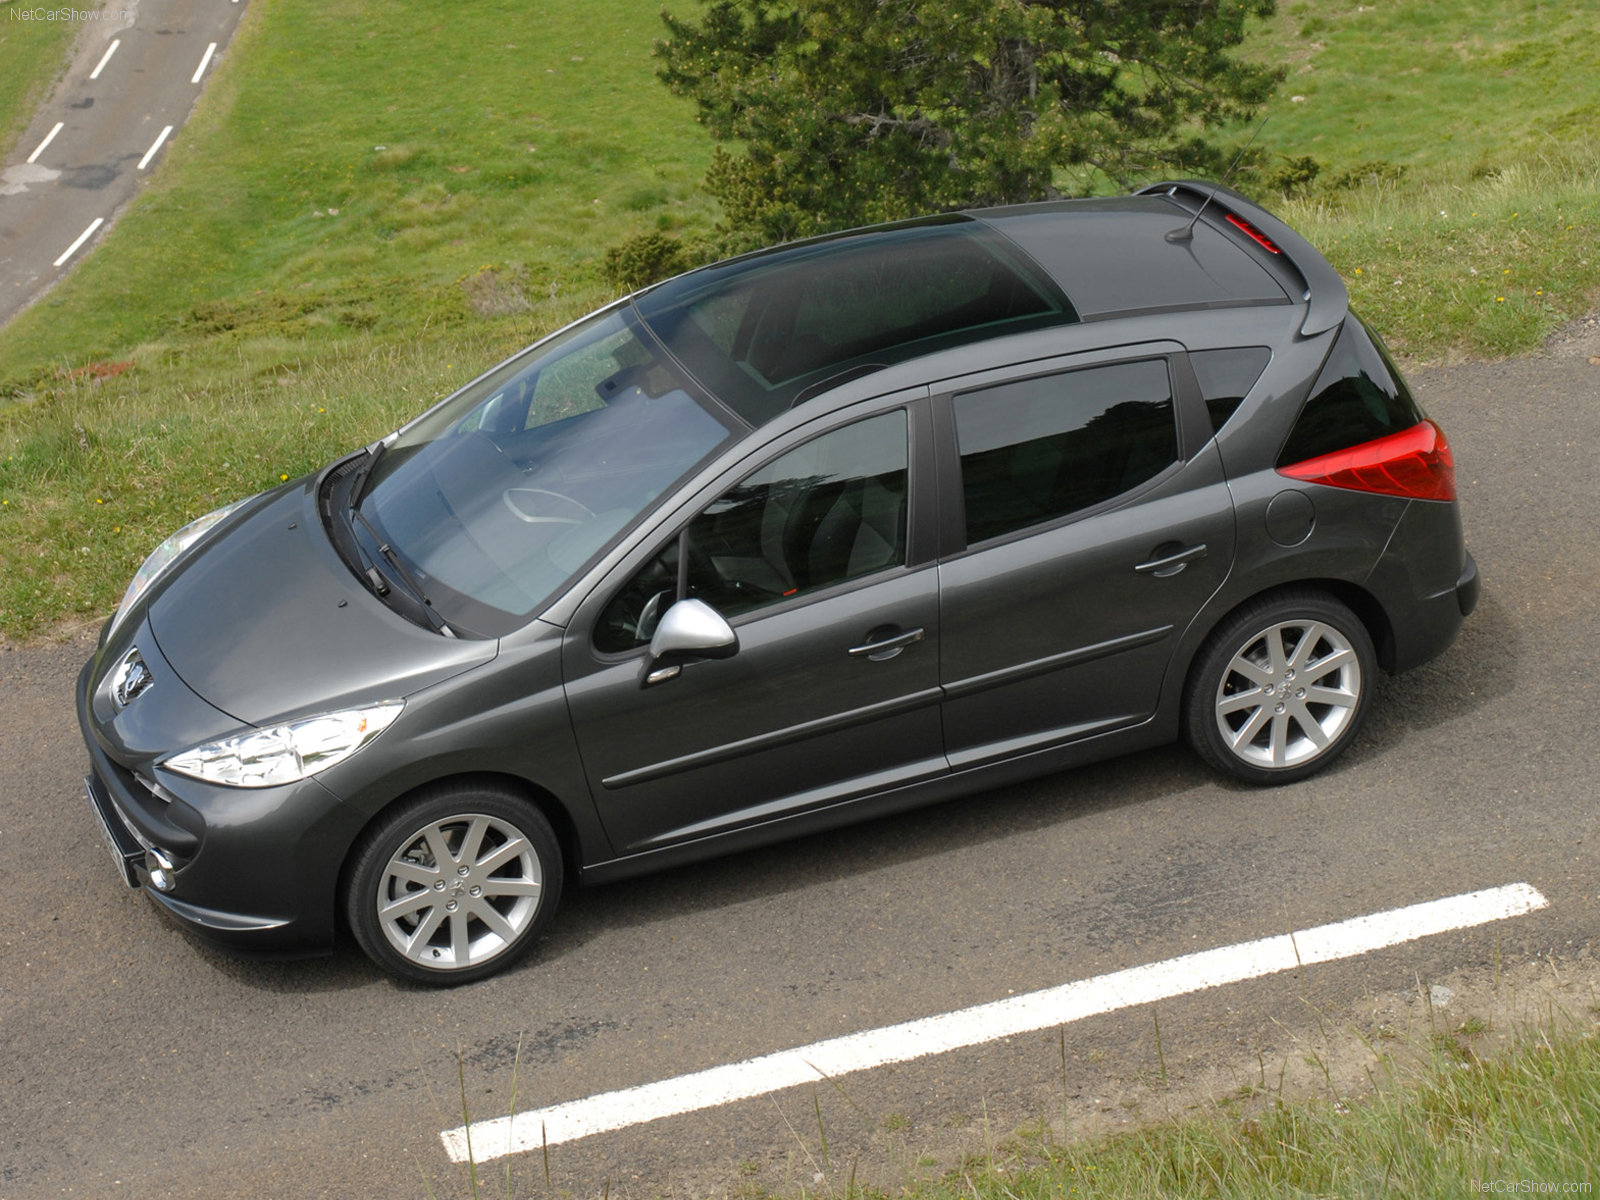 peugeot 207 sw rc photos photogallery with 14 pics. Black Bedroom Furniture Sets. Home Design Ideas